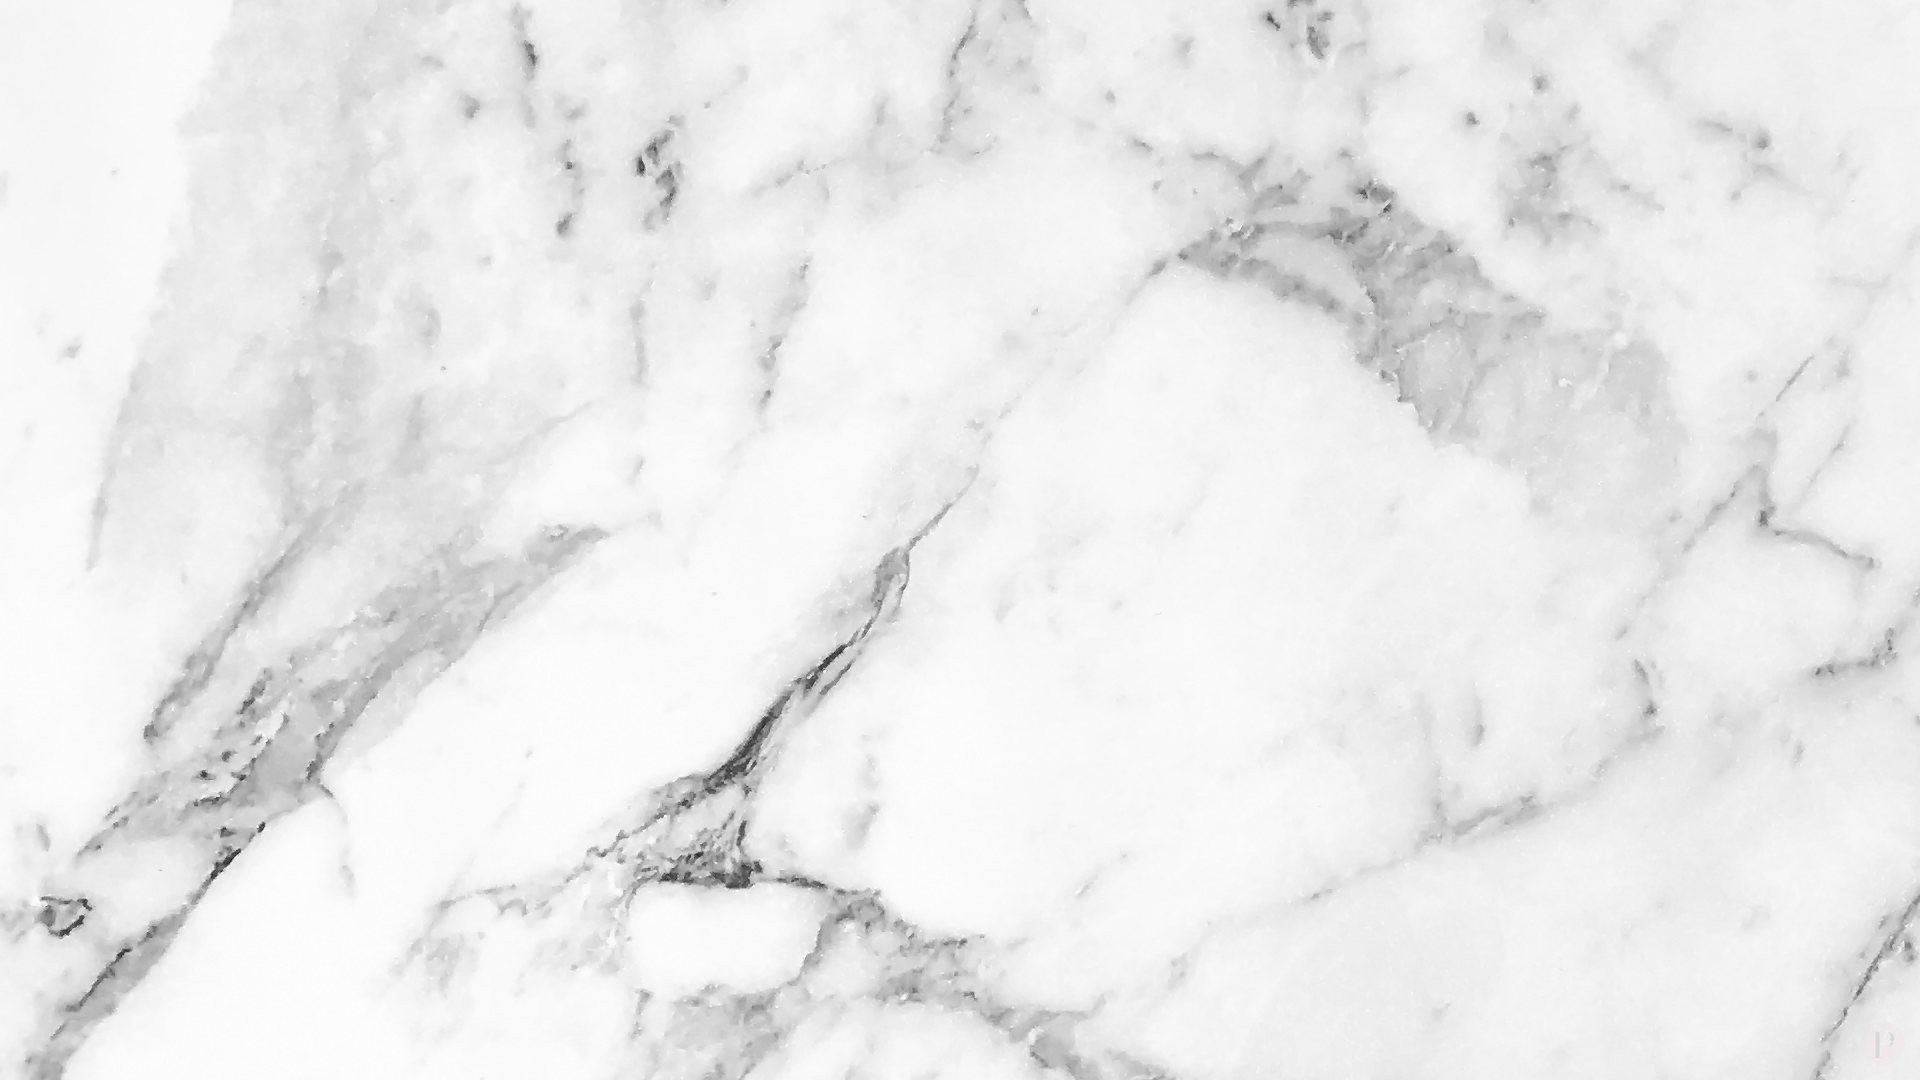 Simple Wallpaper Marble Mac - d2b5ddc050e7b5708bc9f17d8209b083  Snapshot_854584.png